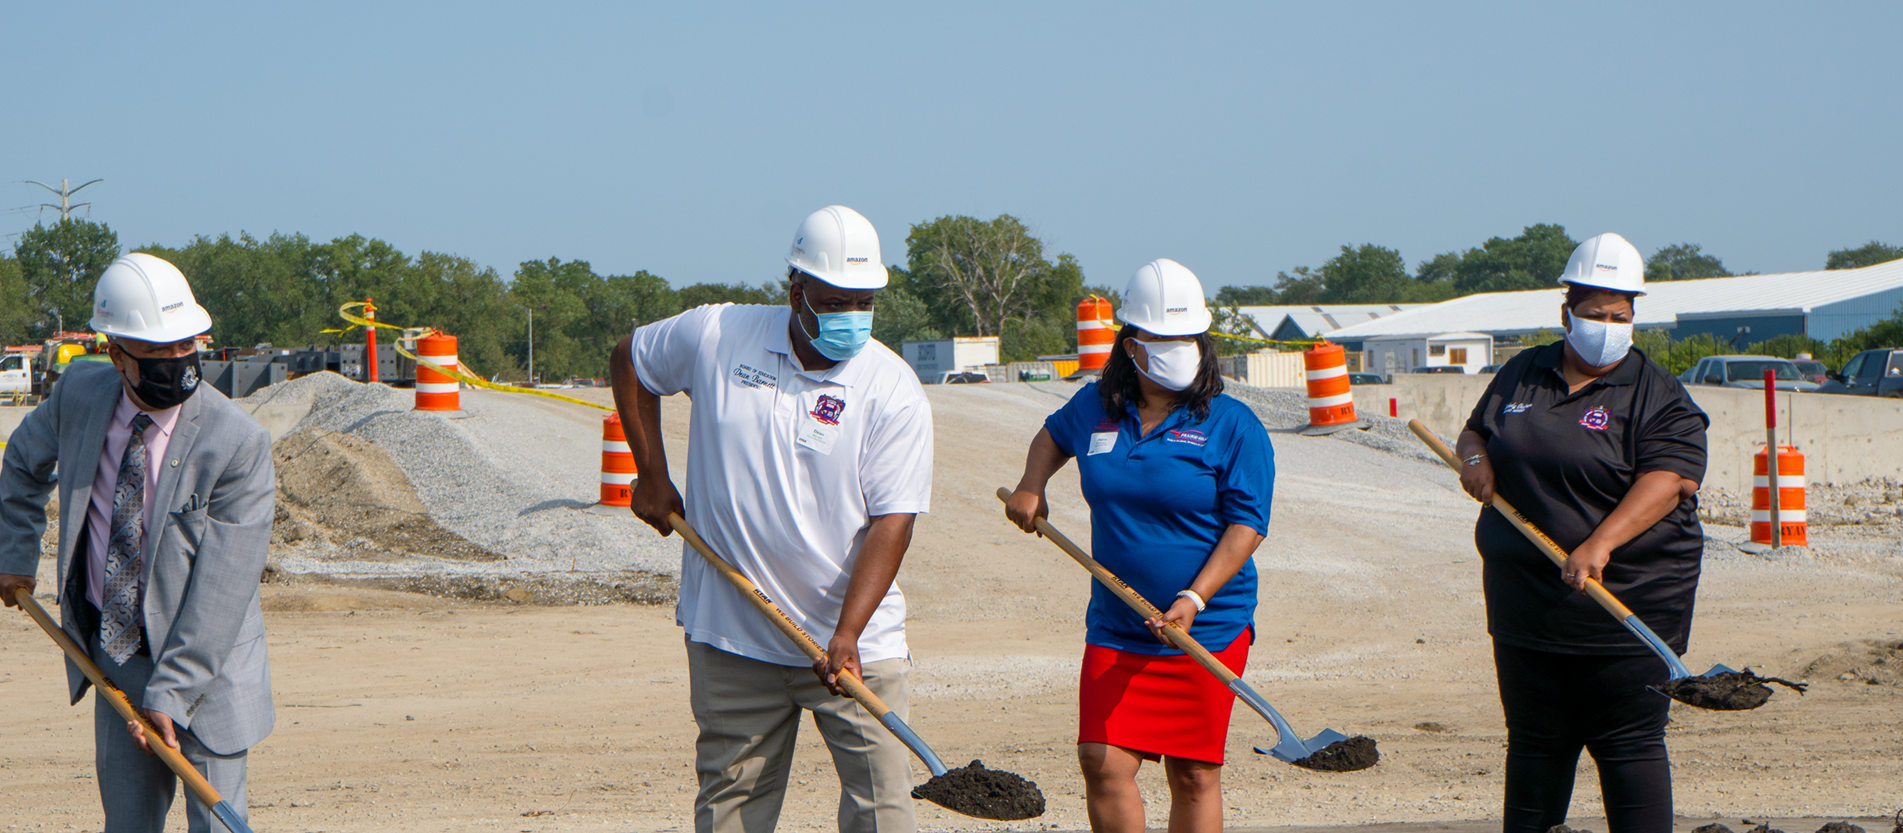 School Board President Dean Barnett (in white) and board member Kimberly Chalmers (in black) at the recent Amazon Fulfillment Center Groundbreaking ceremony